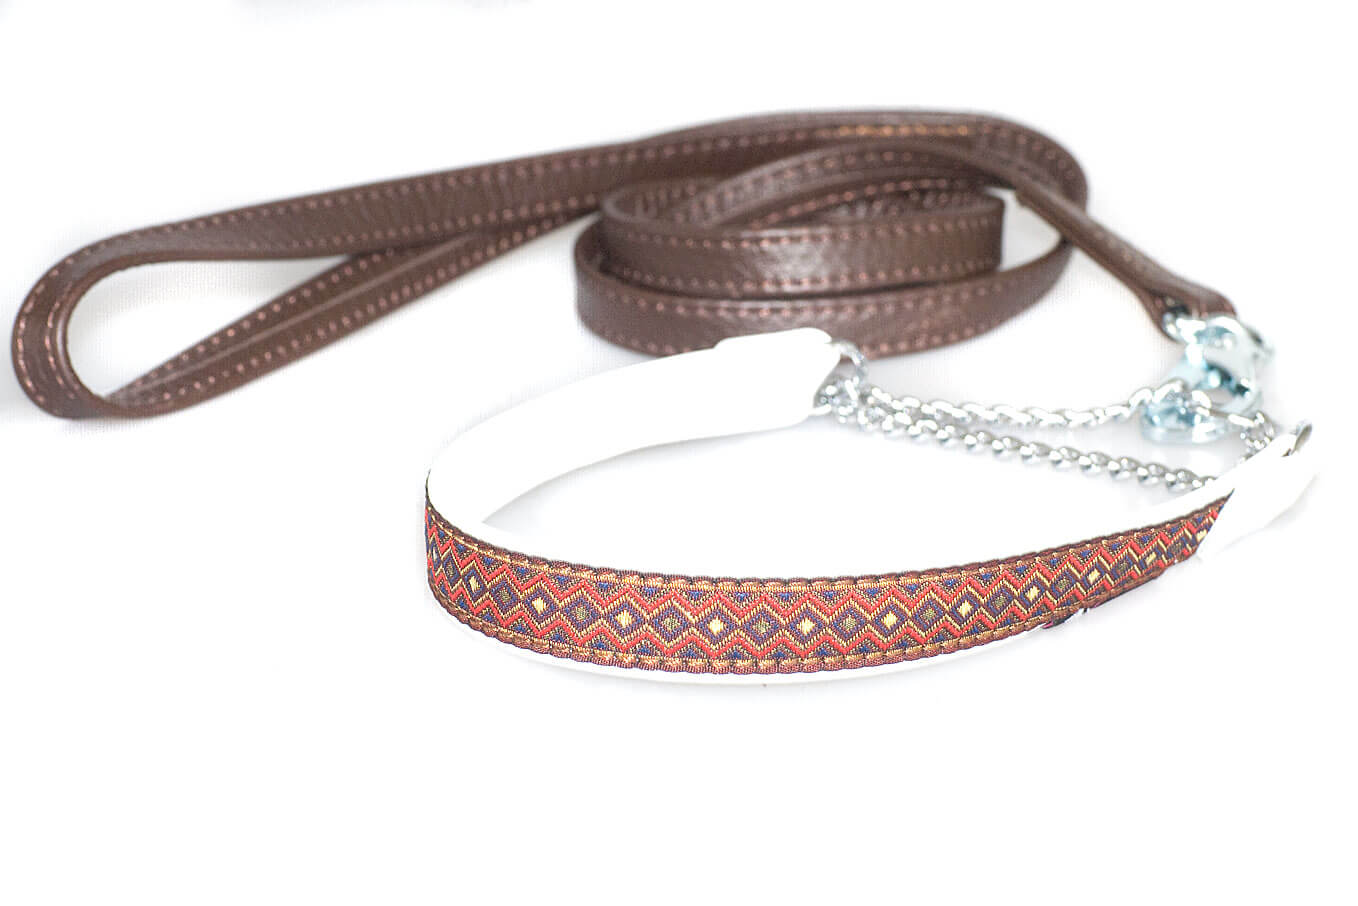 Brown nappa leather double stitched lead to match ribbon collars